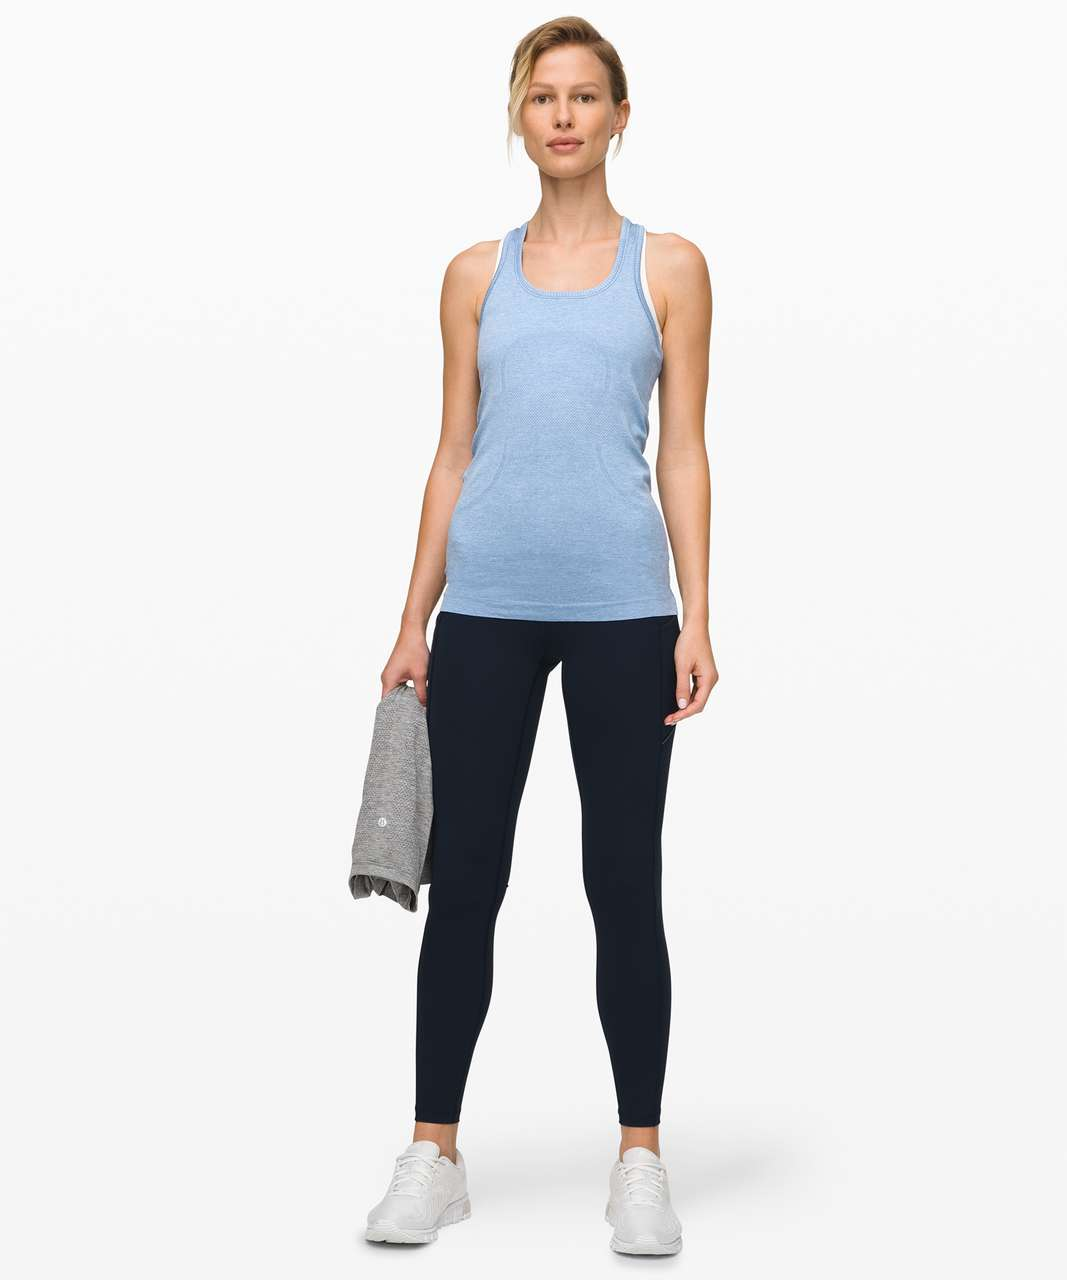 Lululemon Swiftly Tech Racerback - Ice Cap / Tempest Blue